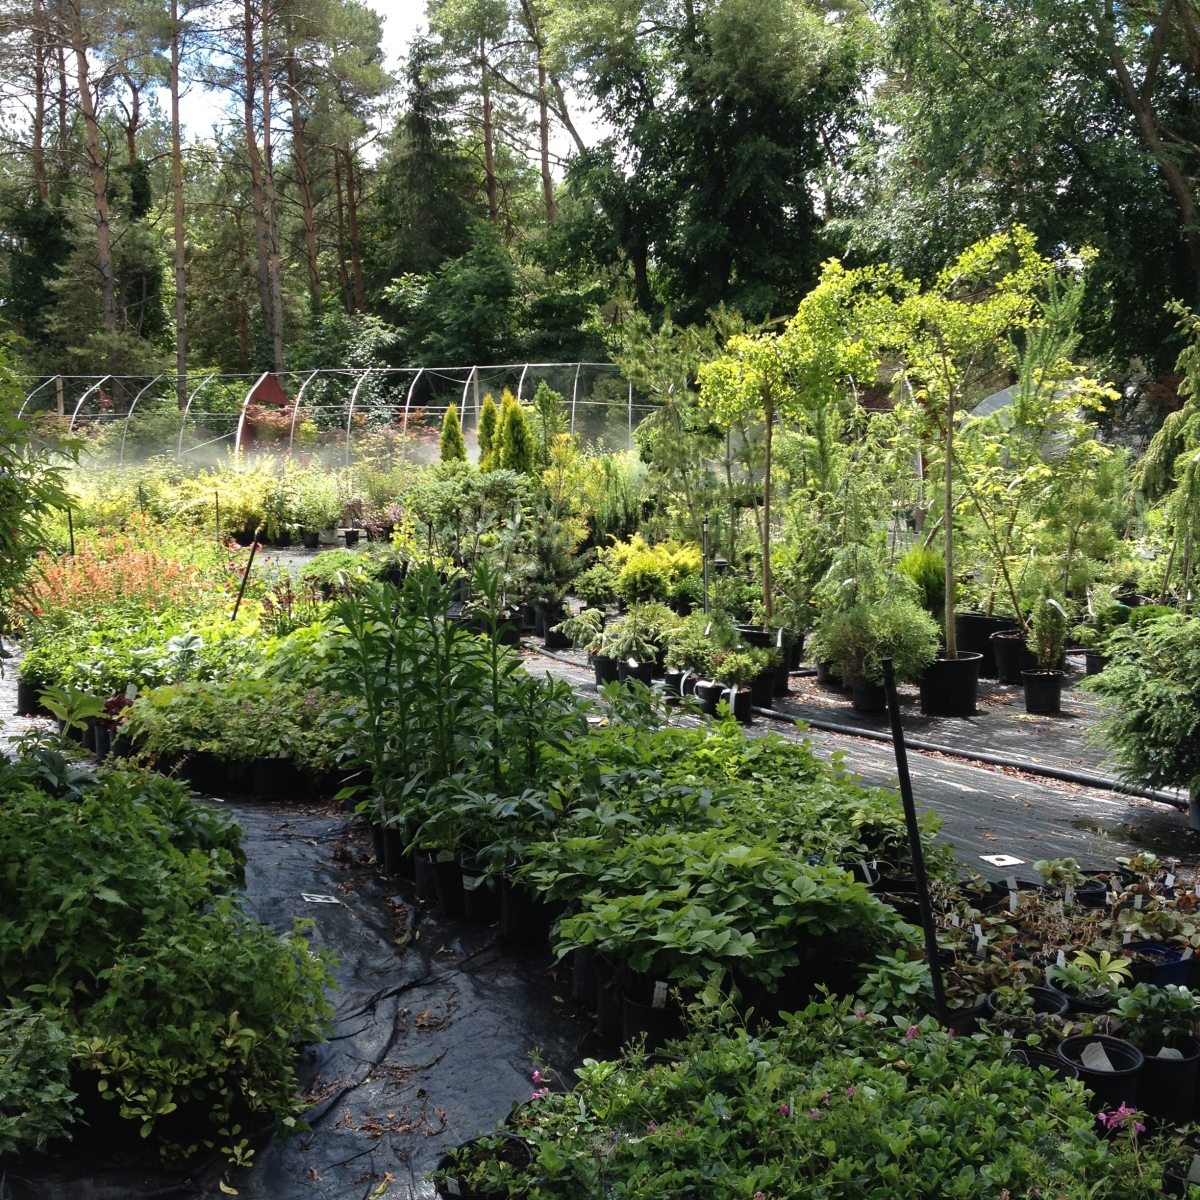 Pots of trees, shrubs and perennials for sale at Lost Horizons